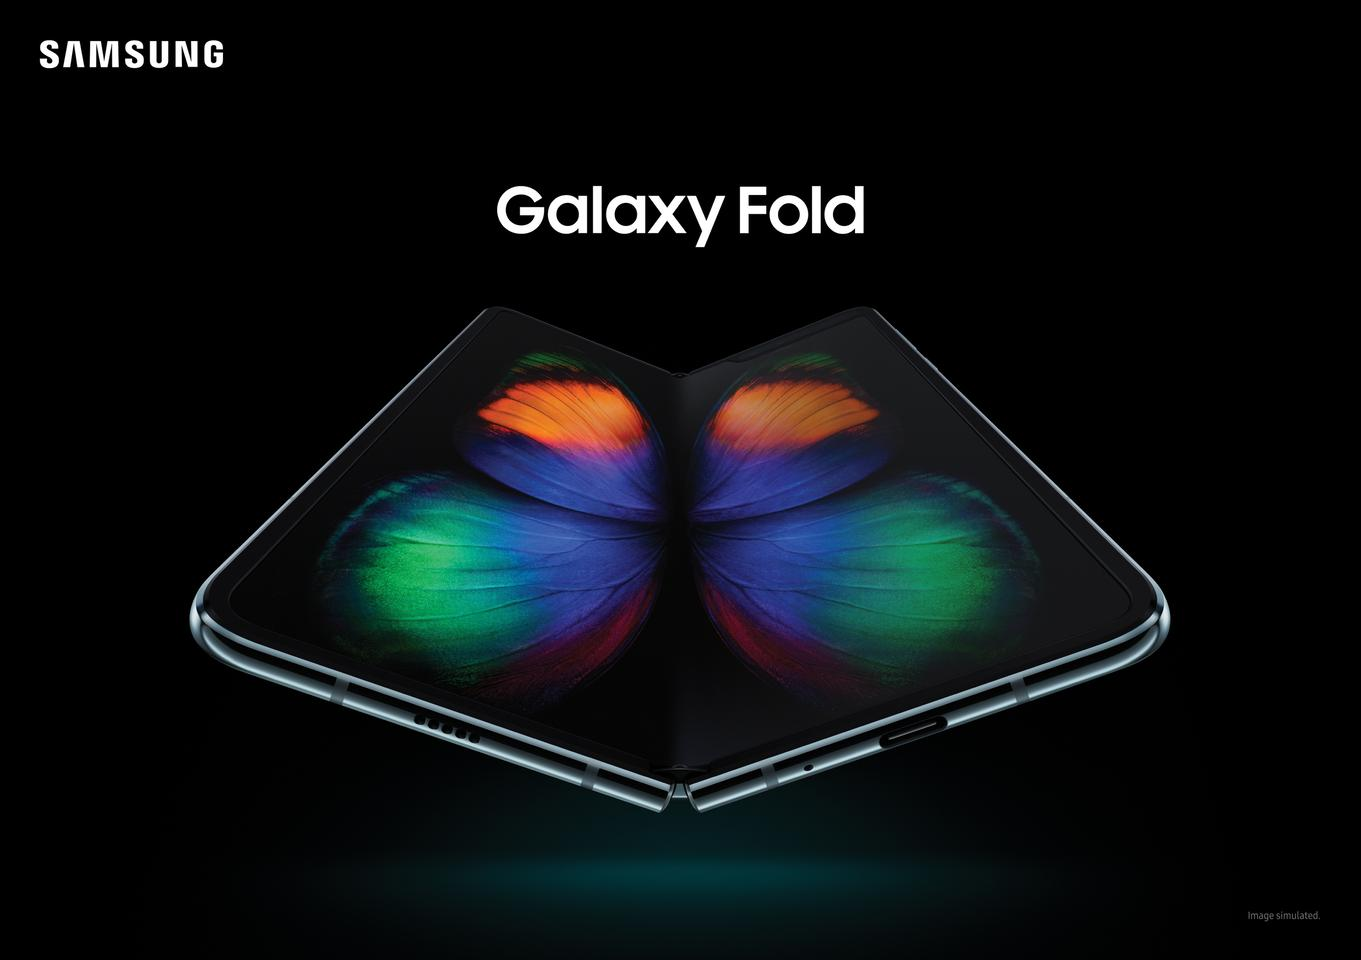 Samsung's Galaxy Fold smartphone is available in Korean first, ahead of a global rollout over the coming w